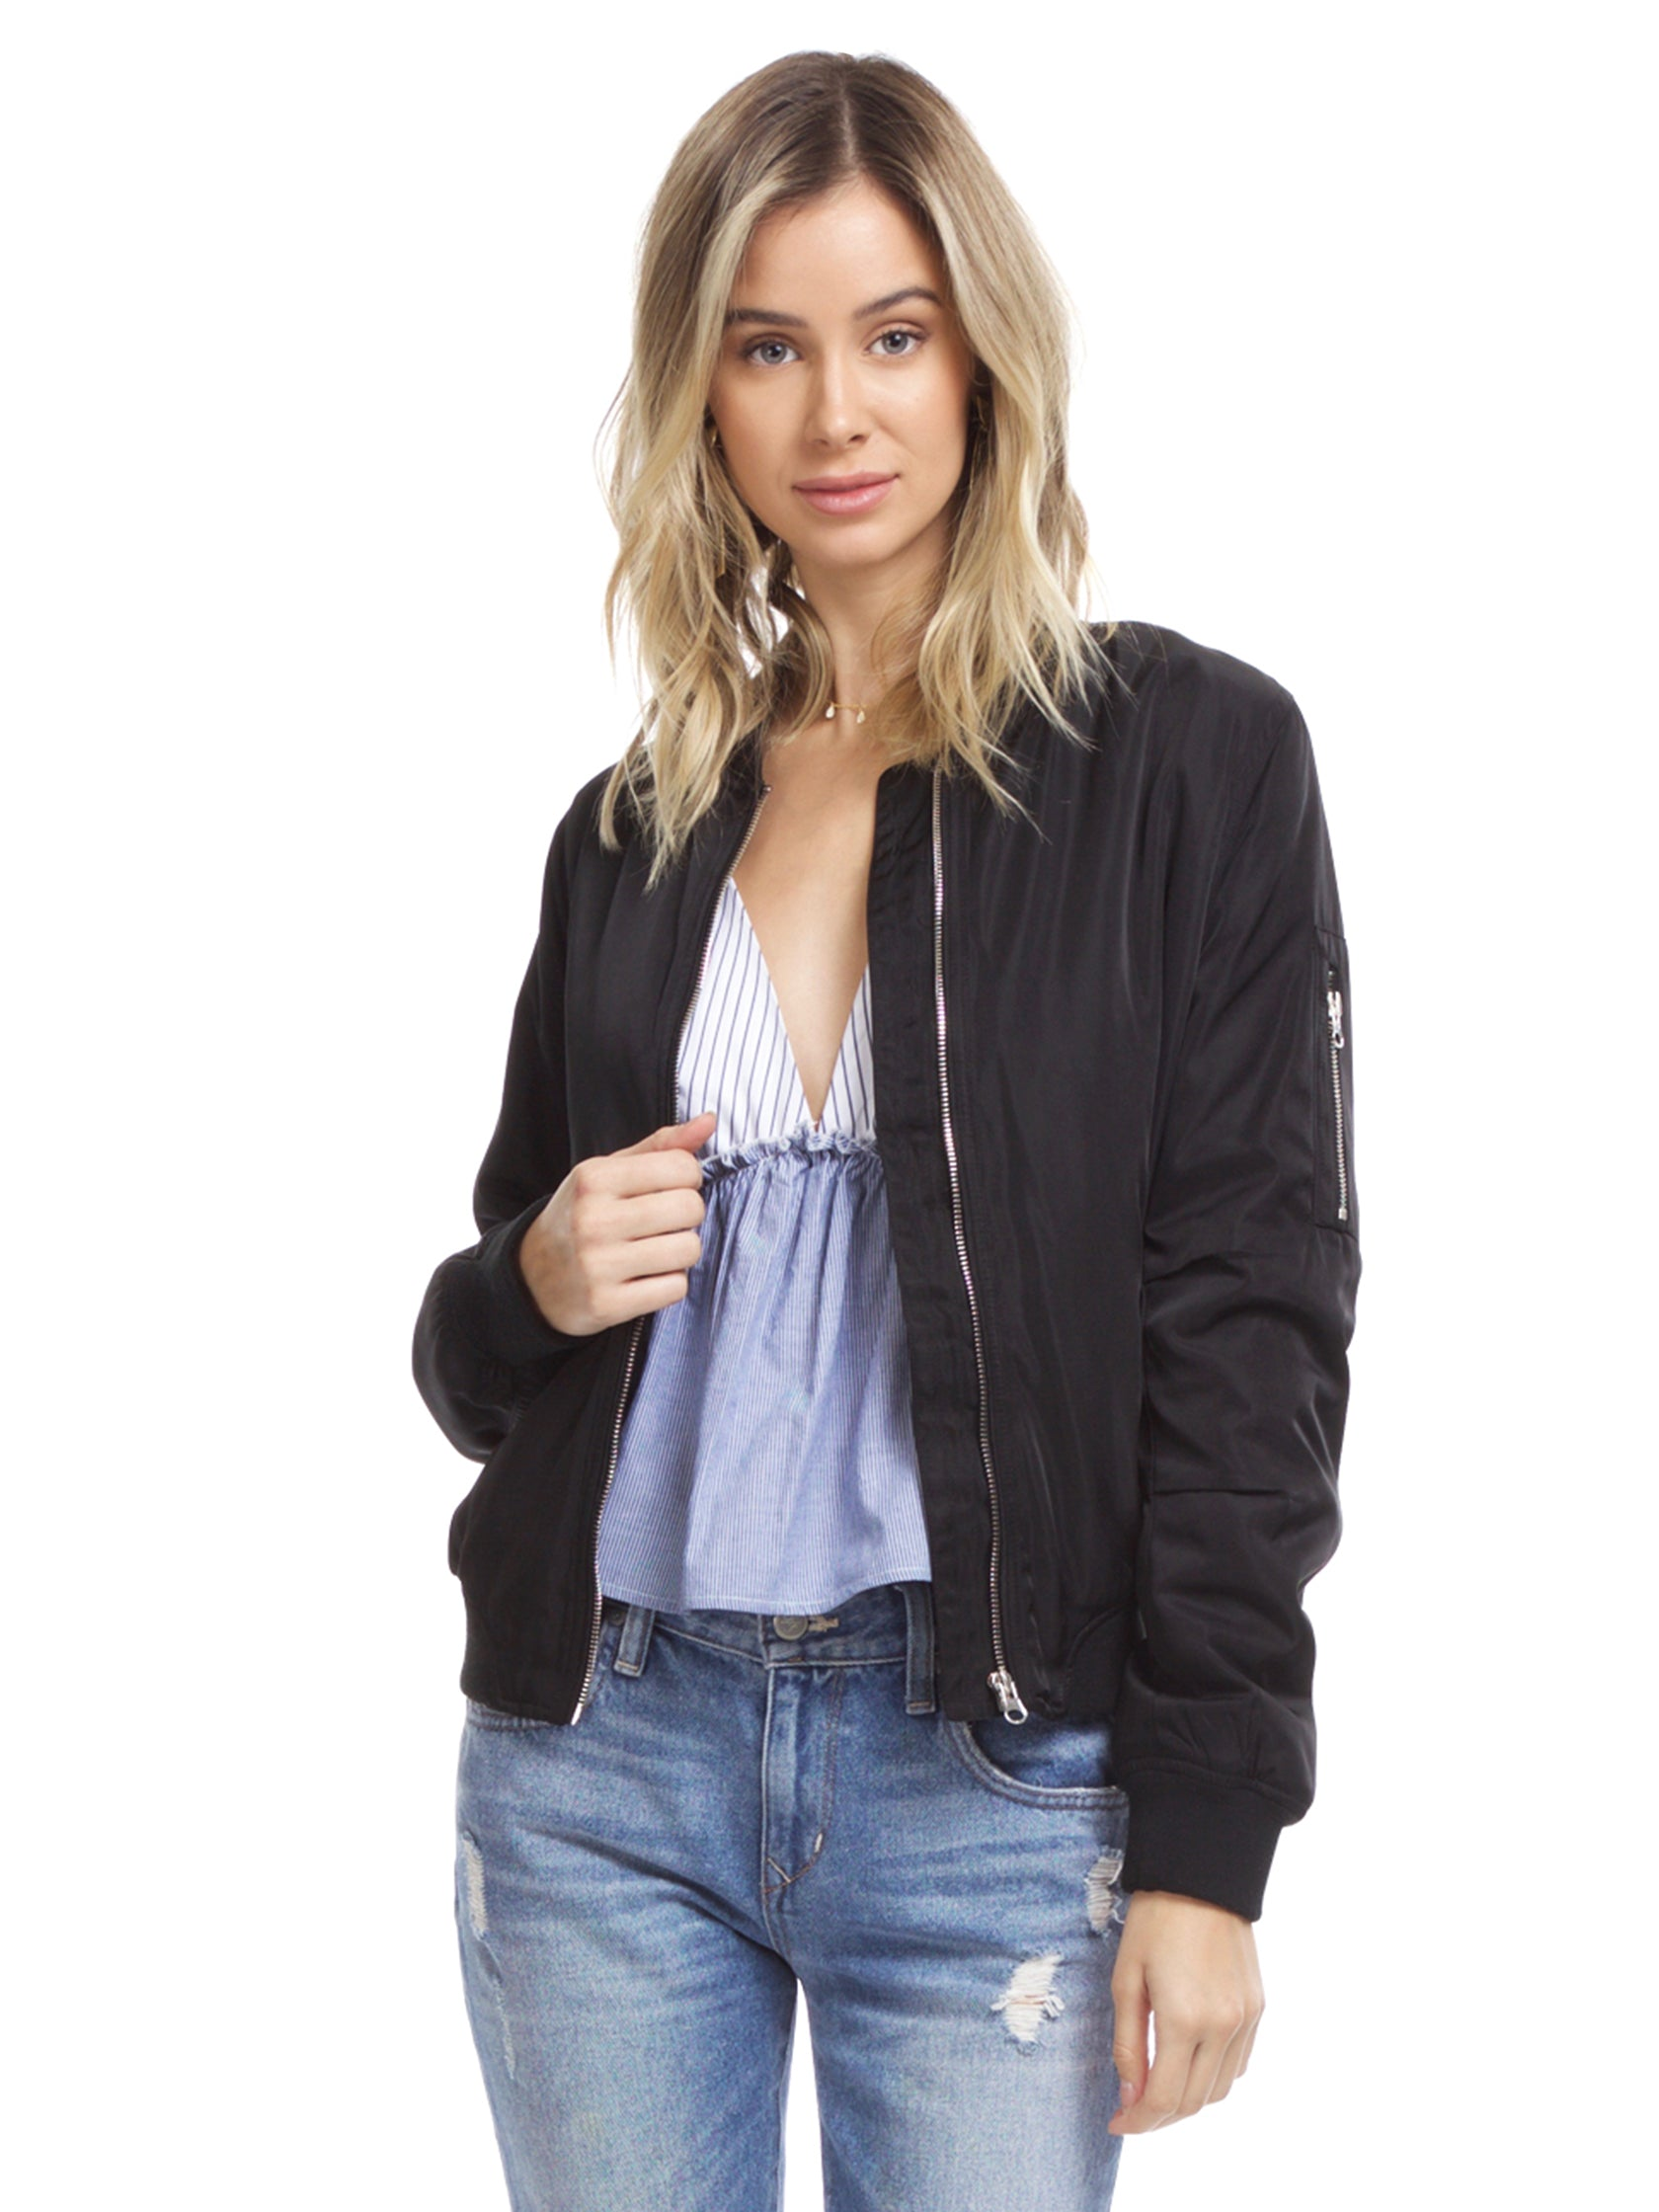 Woman wearing a jacket rental from Lush called Zip Up Bomber Jacket